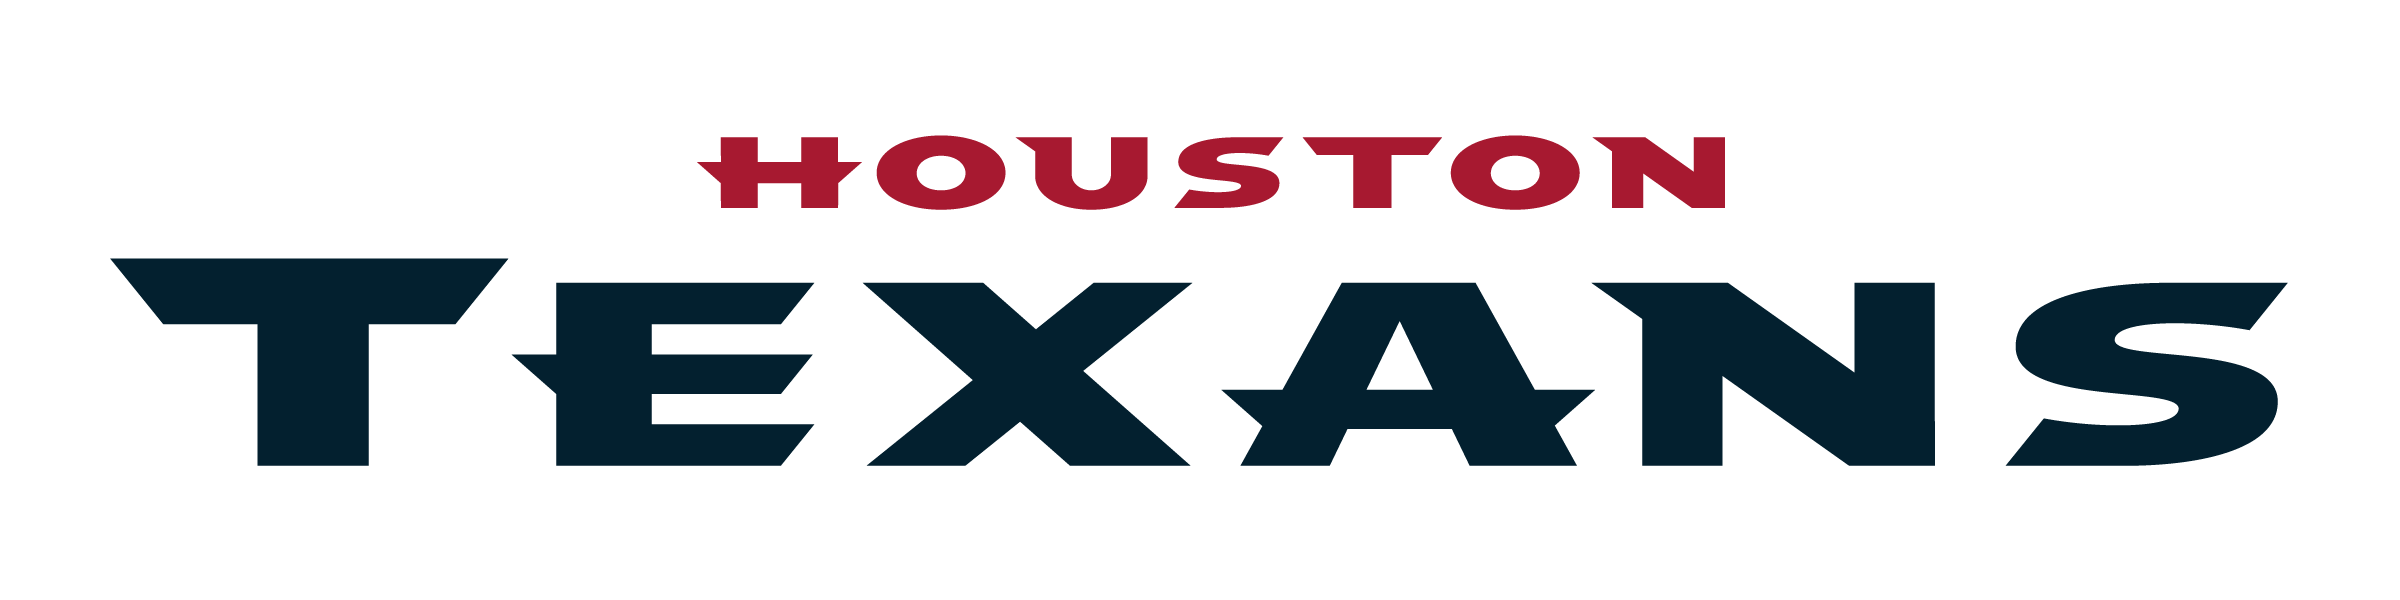 houston texans logo png transparent svg vector freebie supply rh freebiesupply com  houston texans logo vector